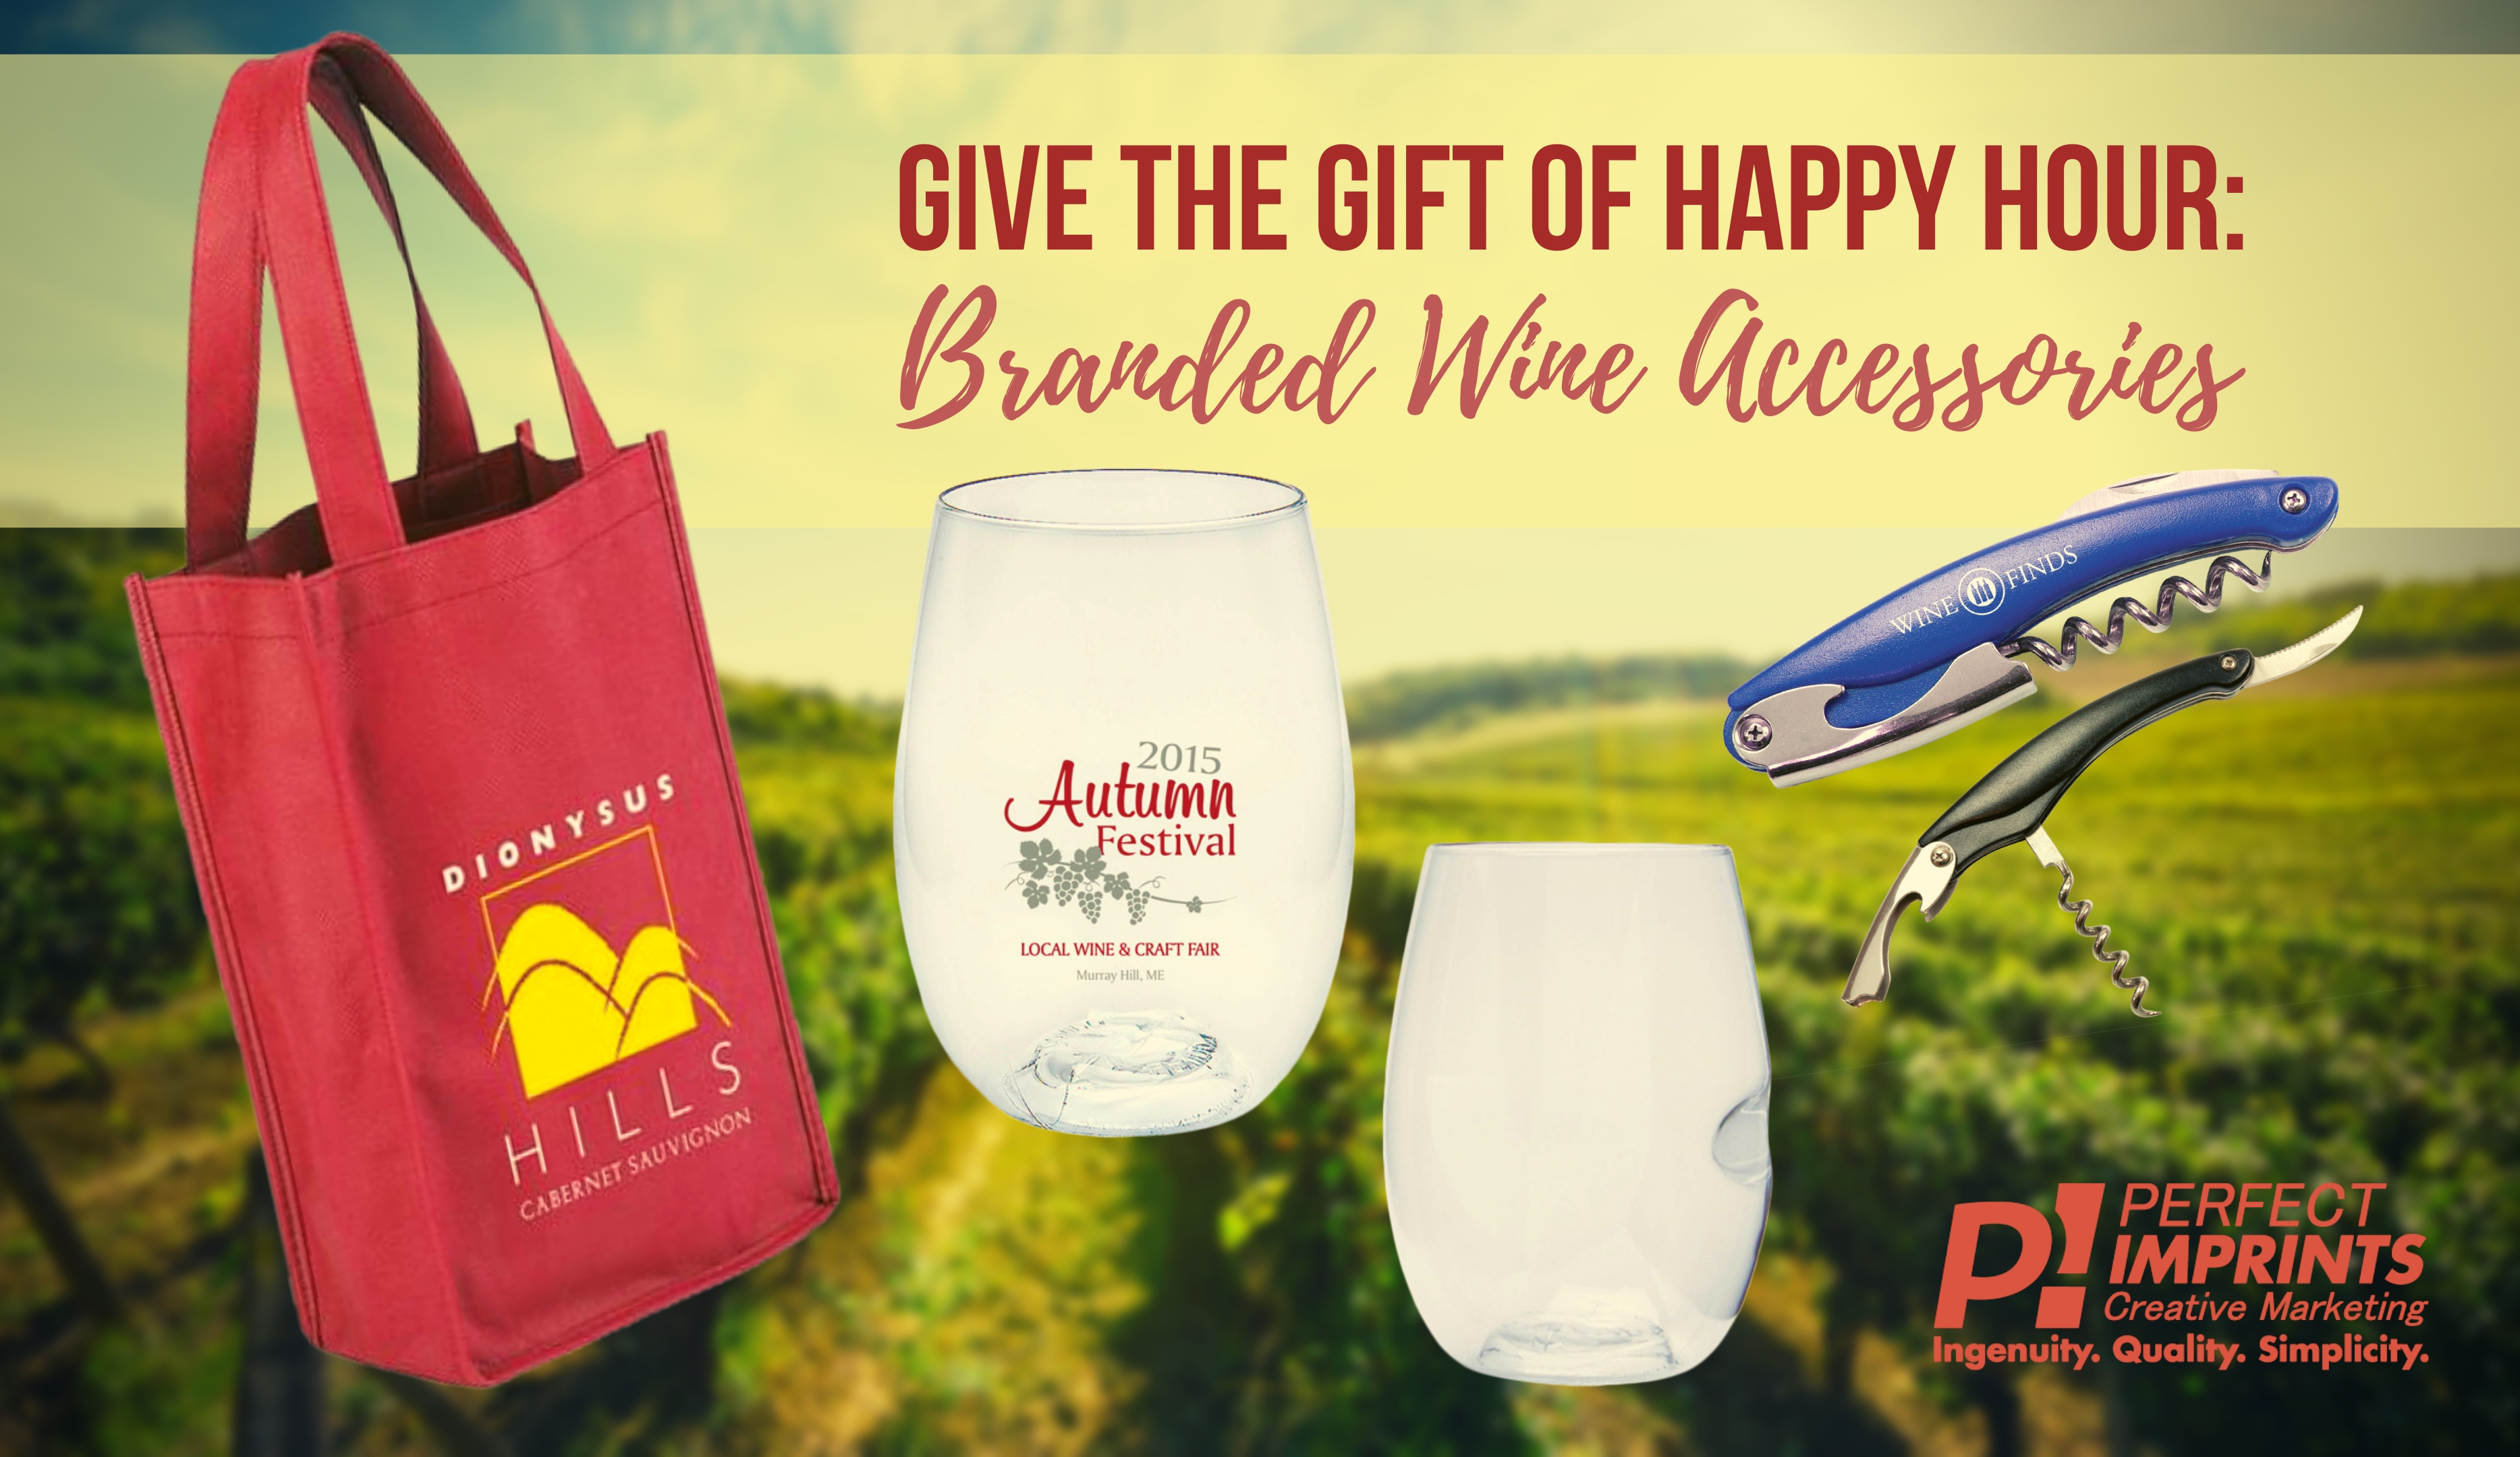 Give the Gift of Happy Hour: Branded Wine Accessories